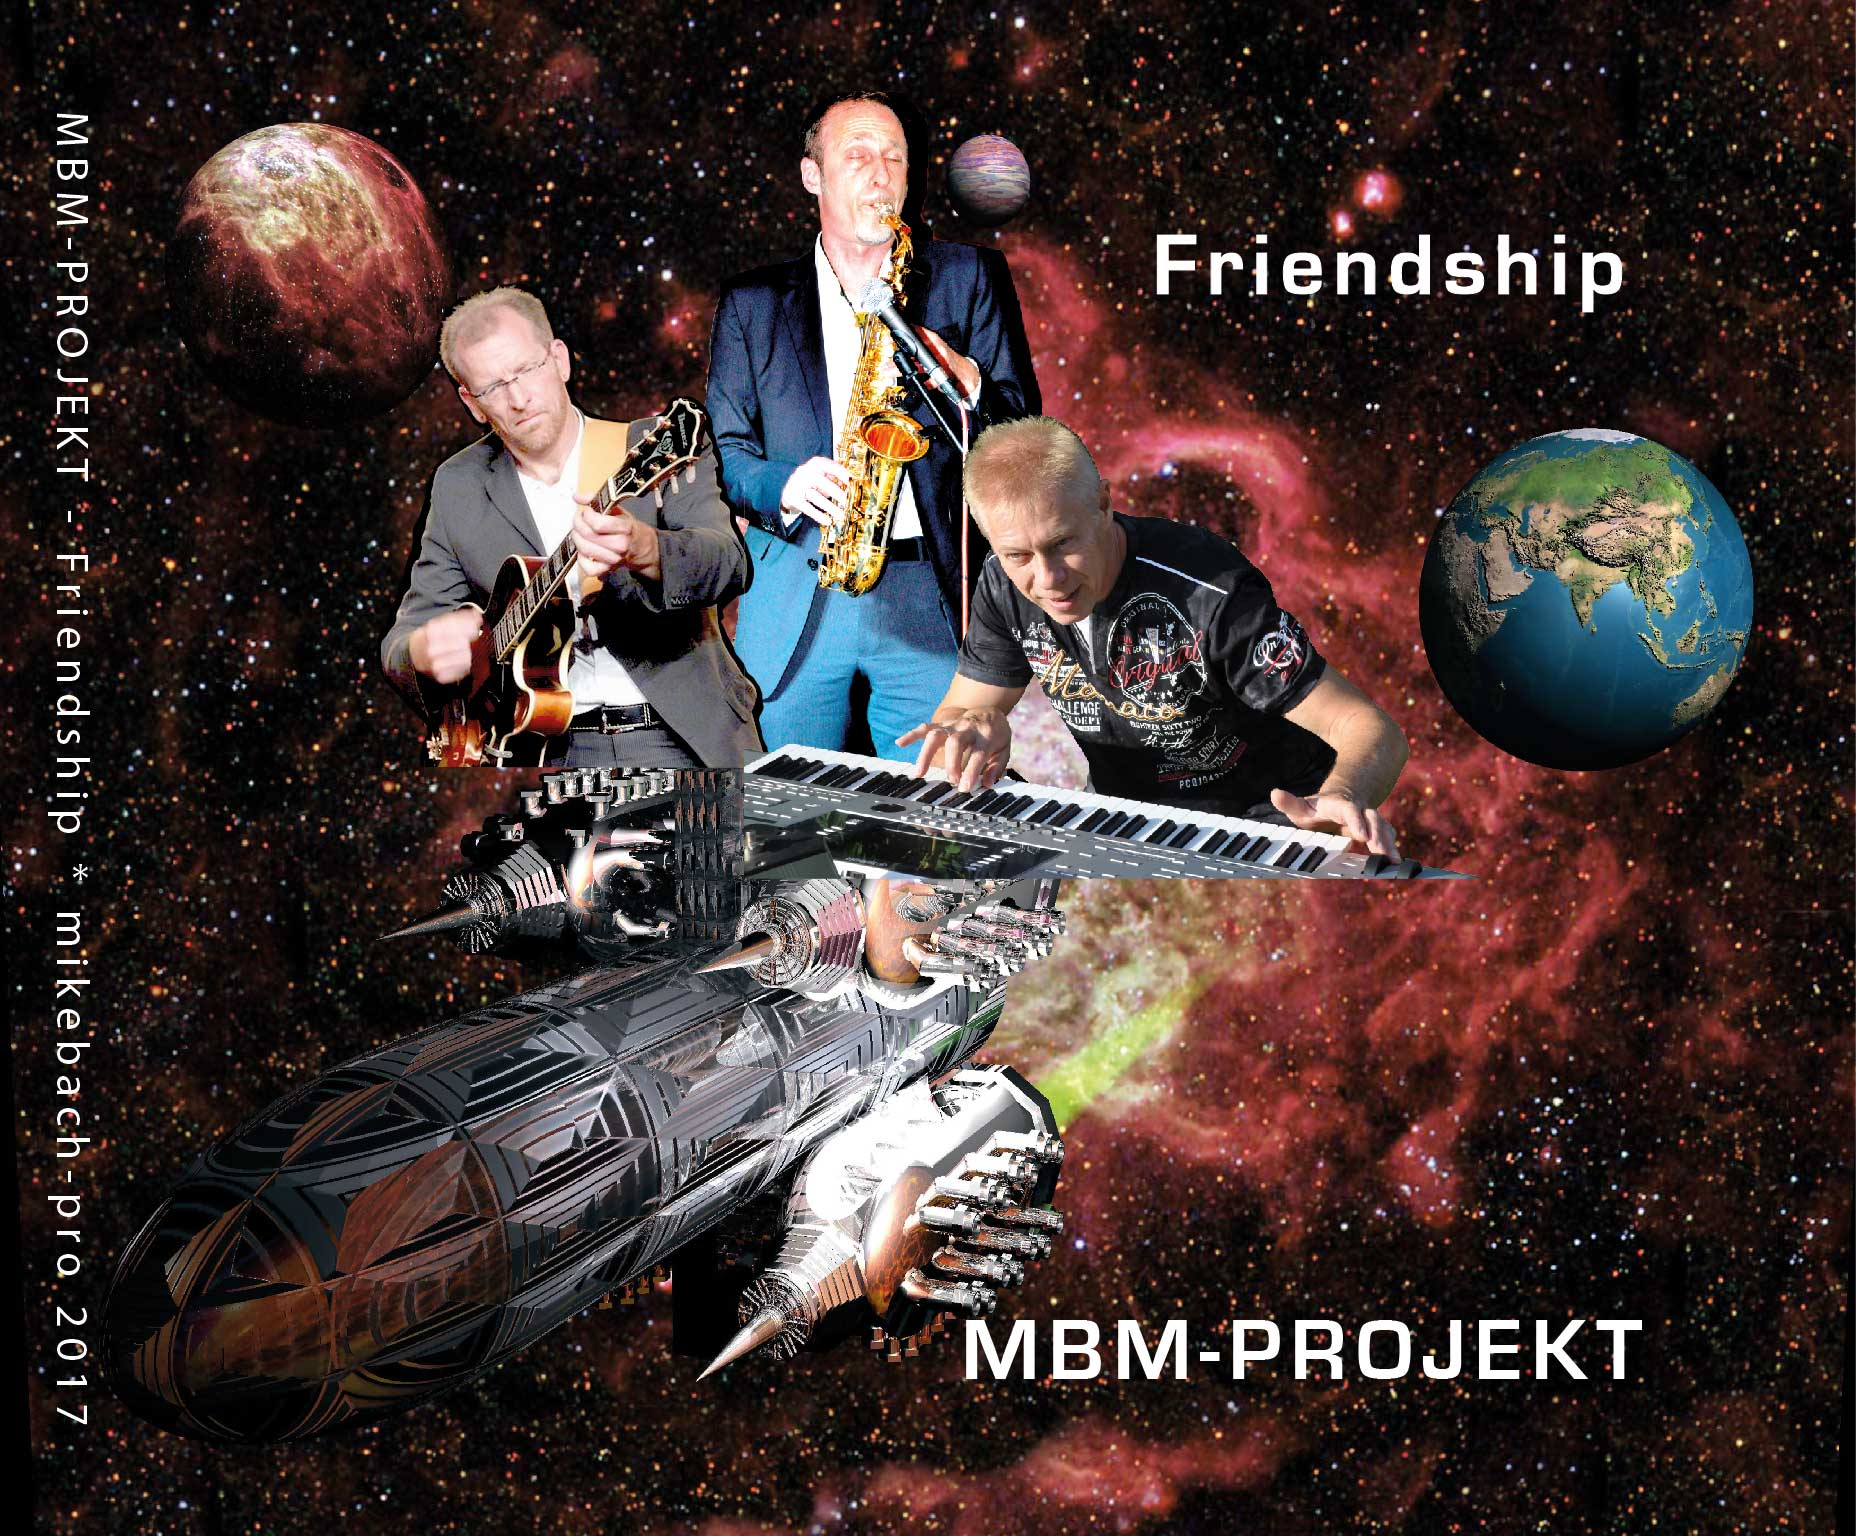 Cover-Entwurf-01-MBM-PROJEKT-FriendshipWeb